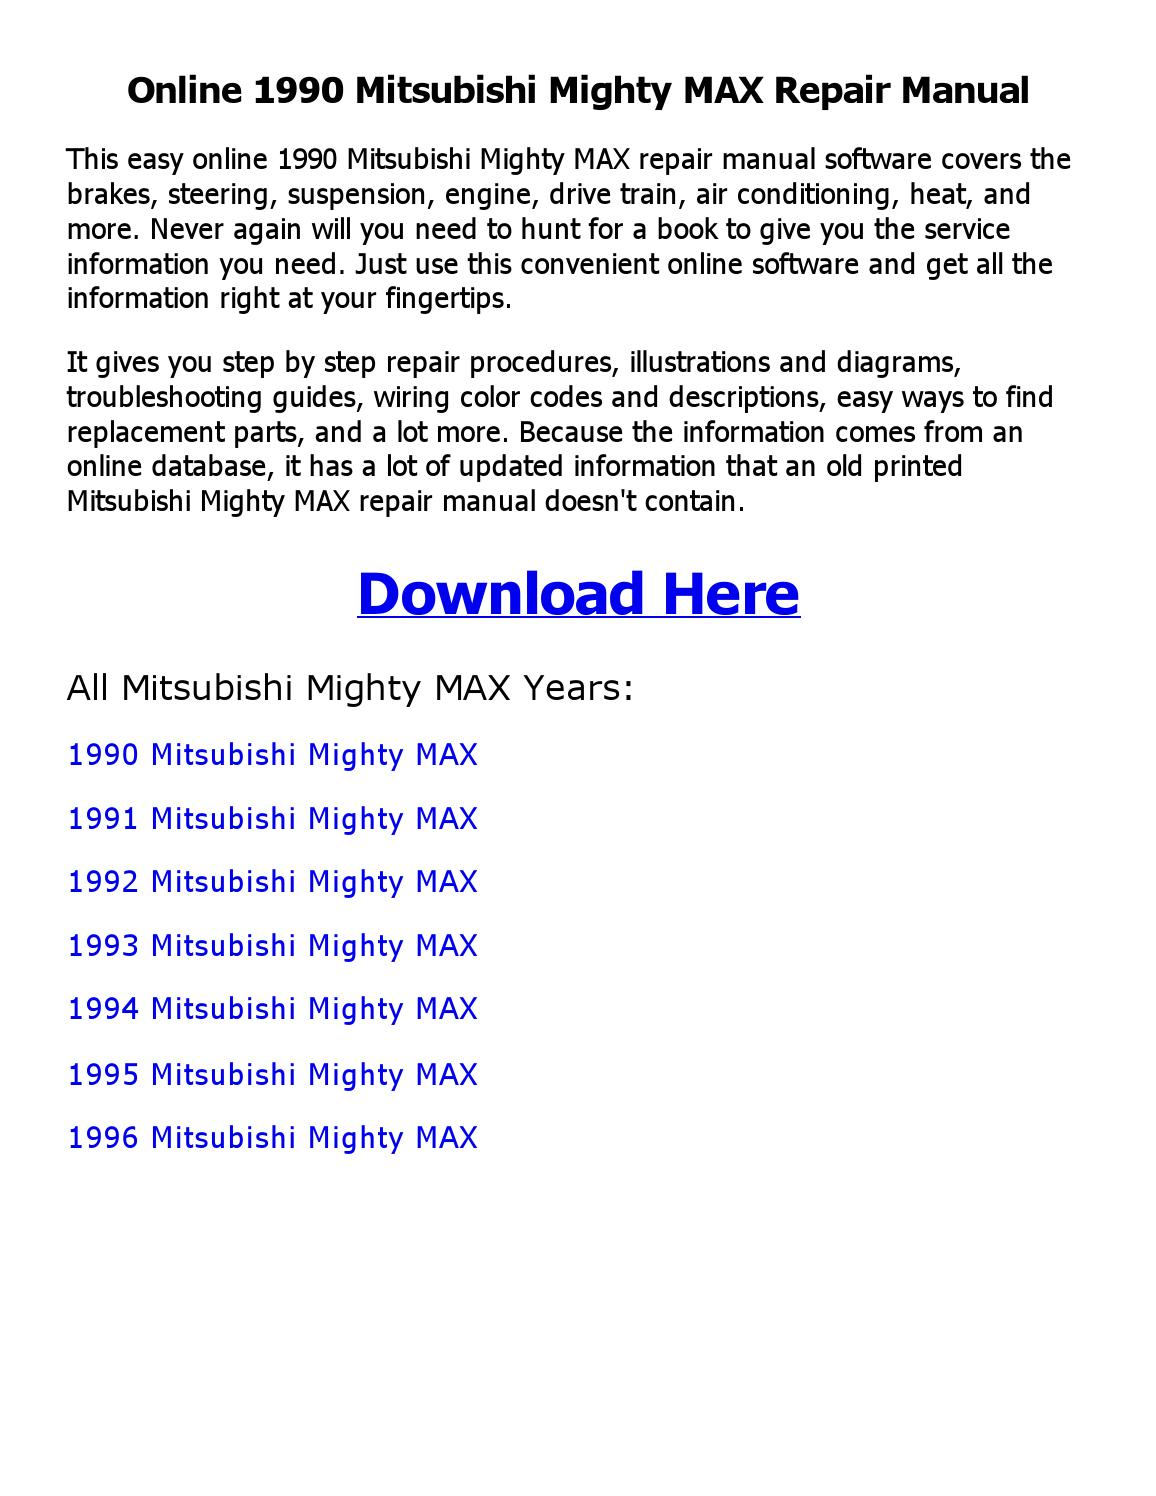 1990 mitsubishi mighty max repair manual online by shoaibsiddique - issuu